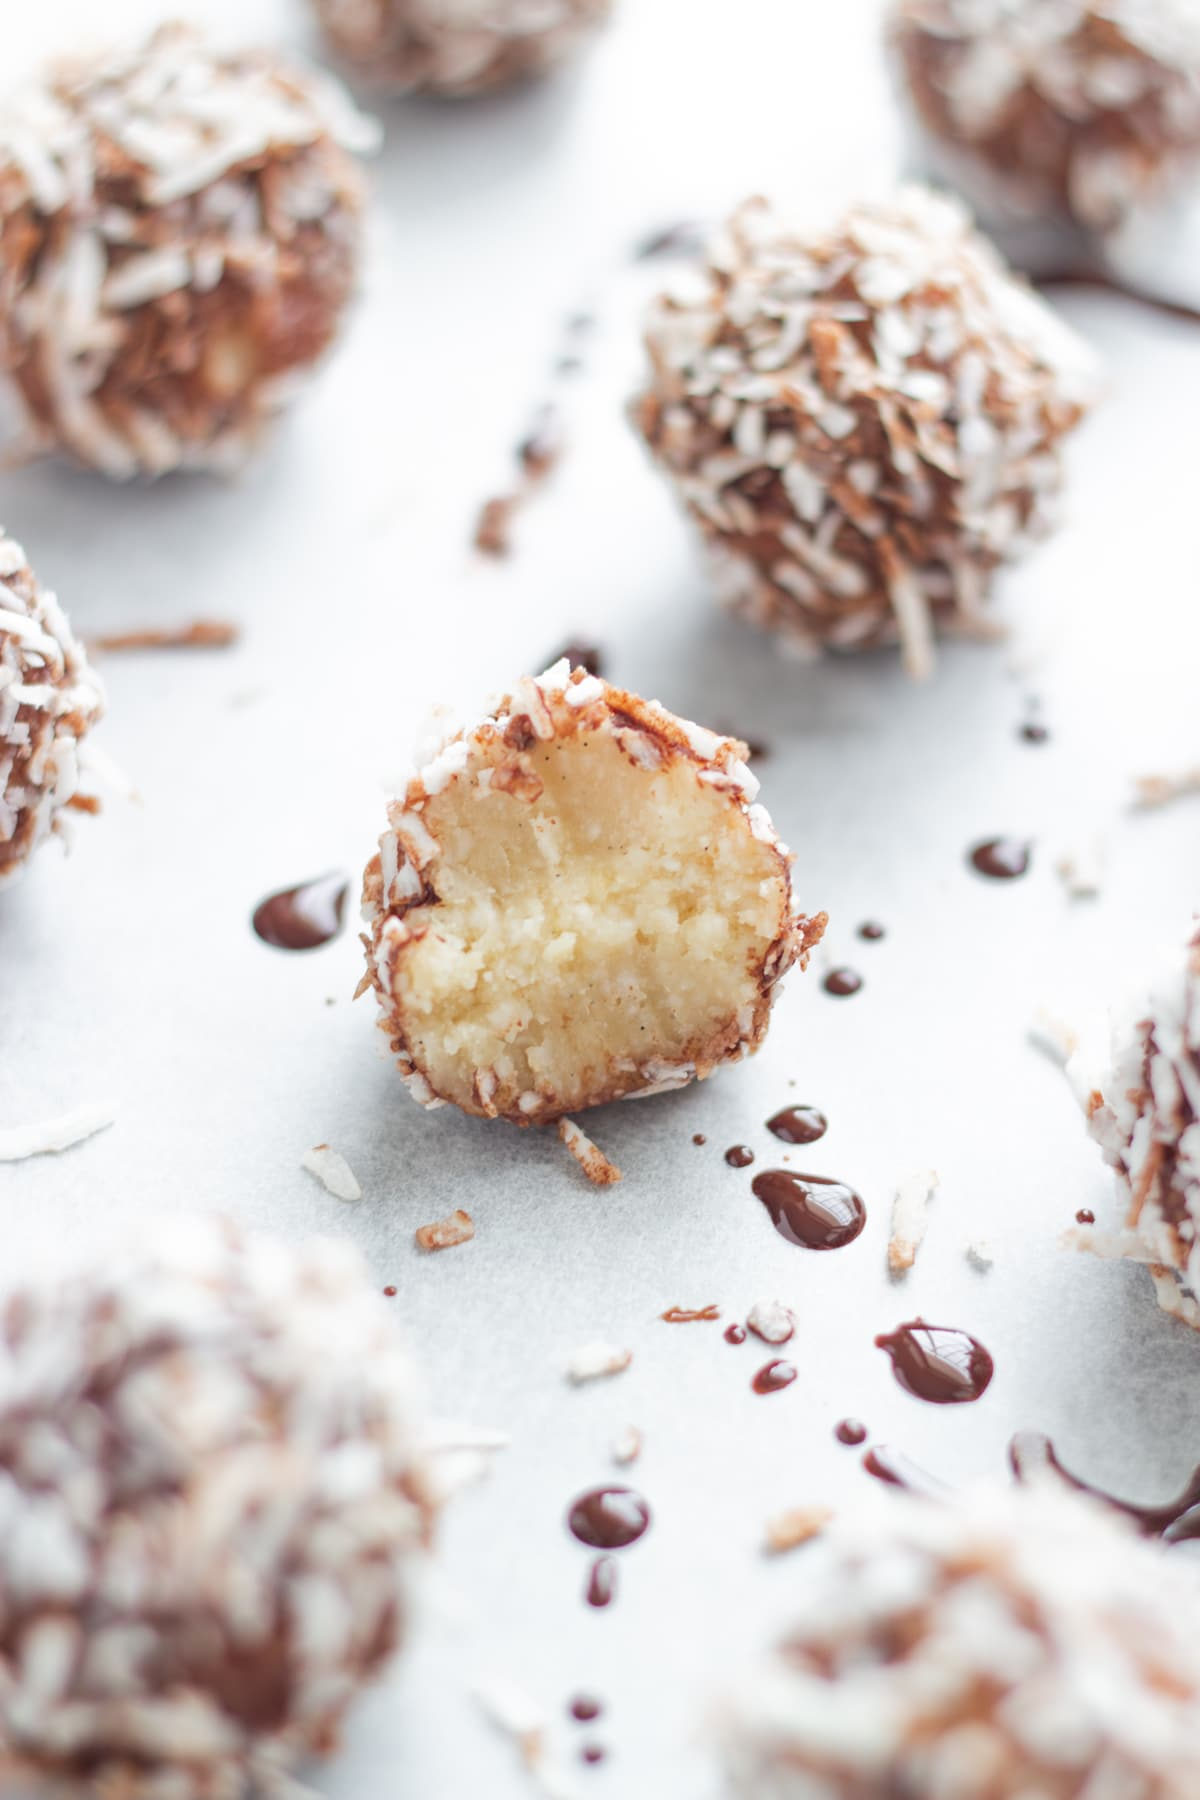 lamington bliss balls on a baking tray lined with baking paper with one of the bliss balls cut in half to show the inside